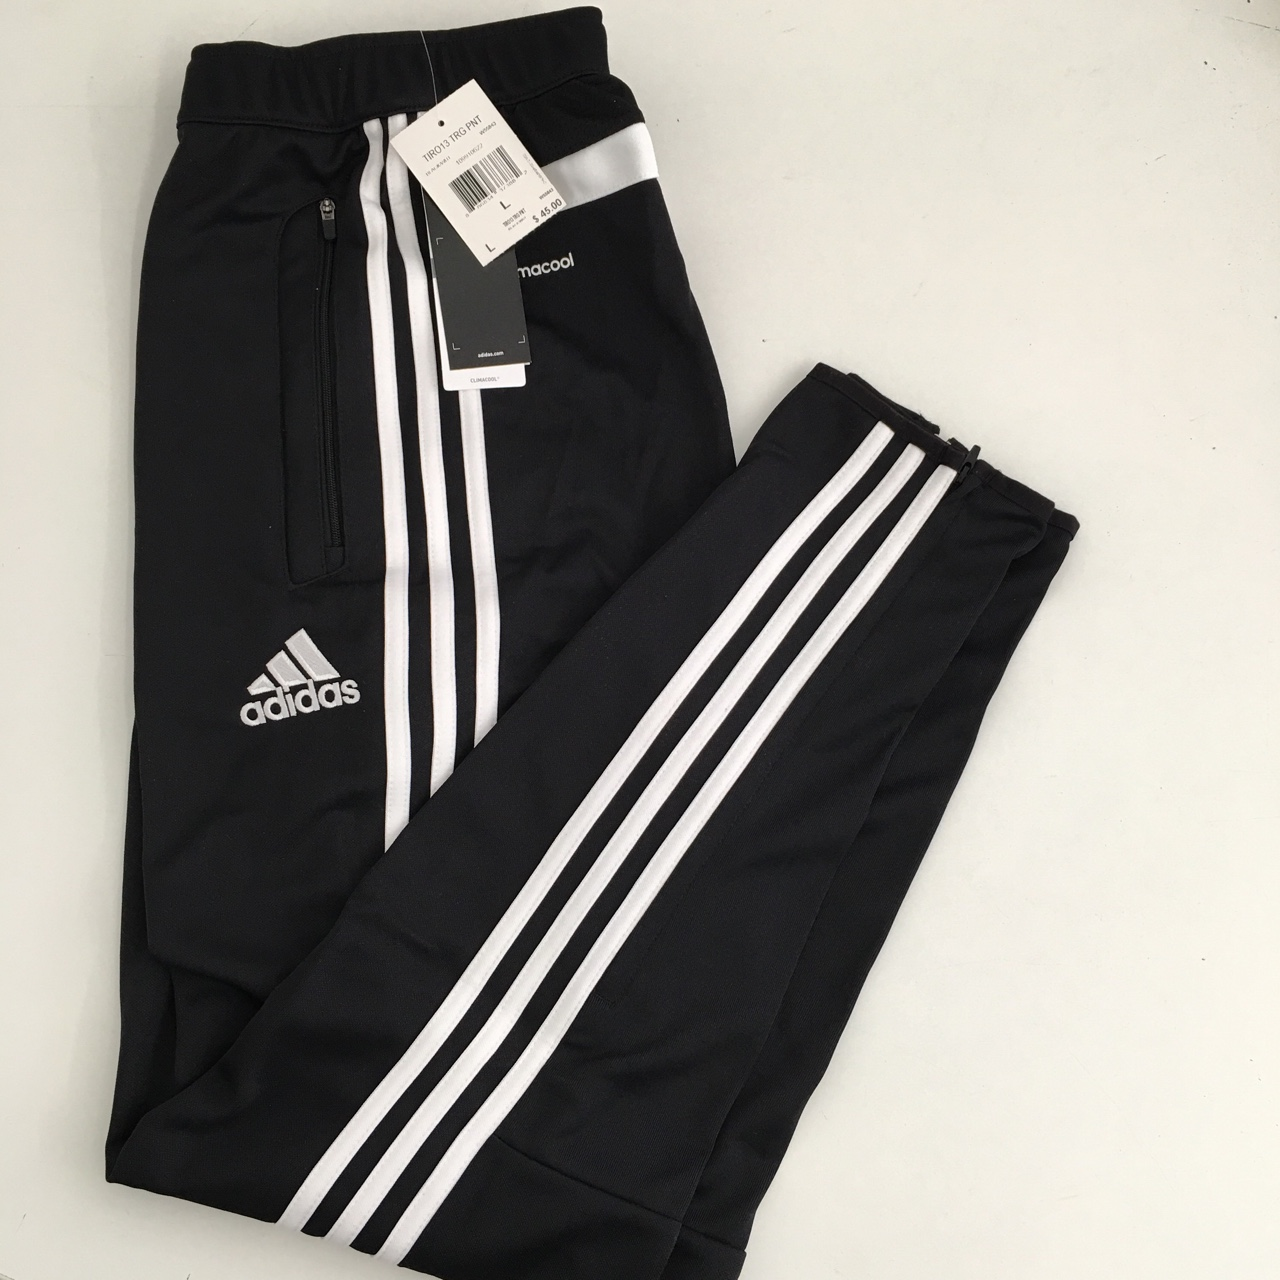 Adidas Men Tiro 13 training Pants . MEn Size L and S Depop